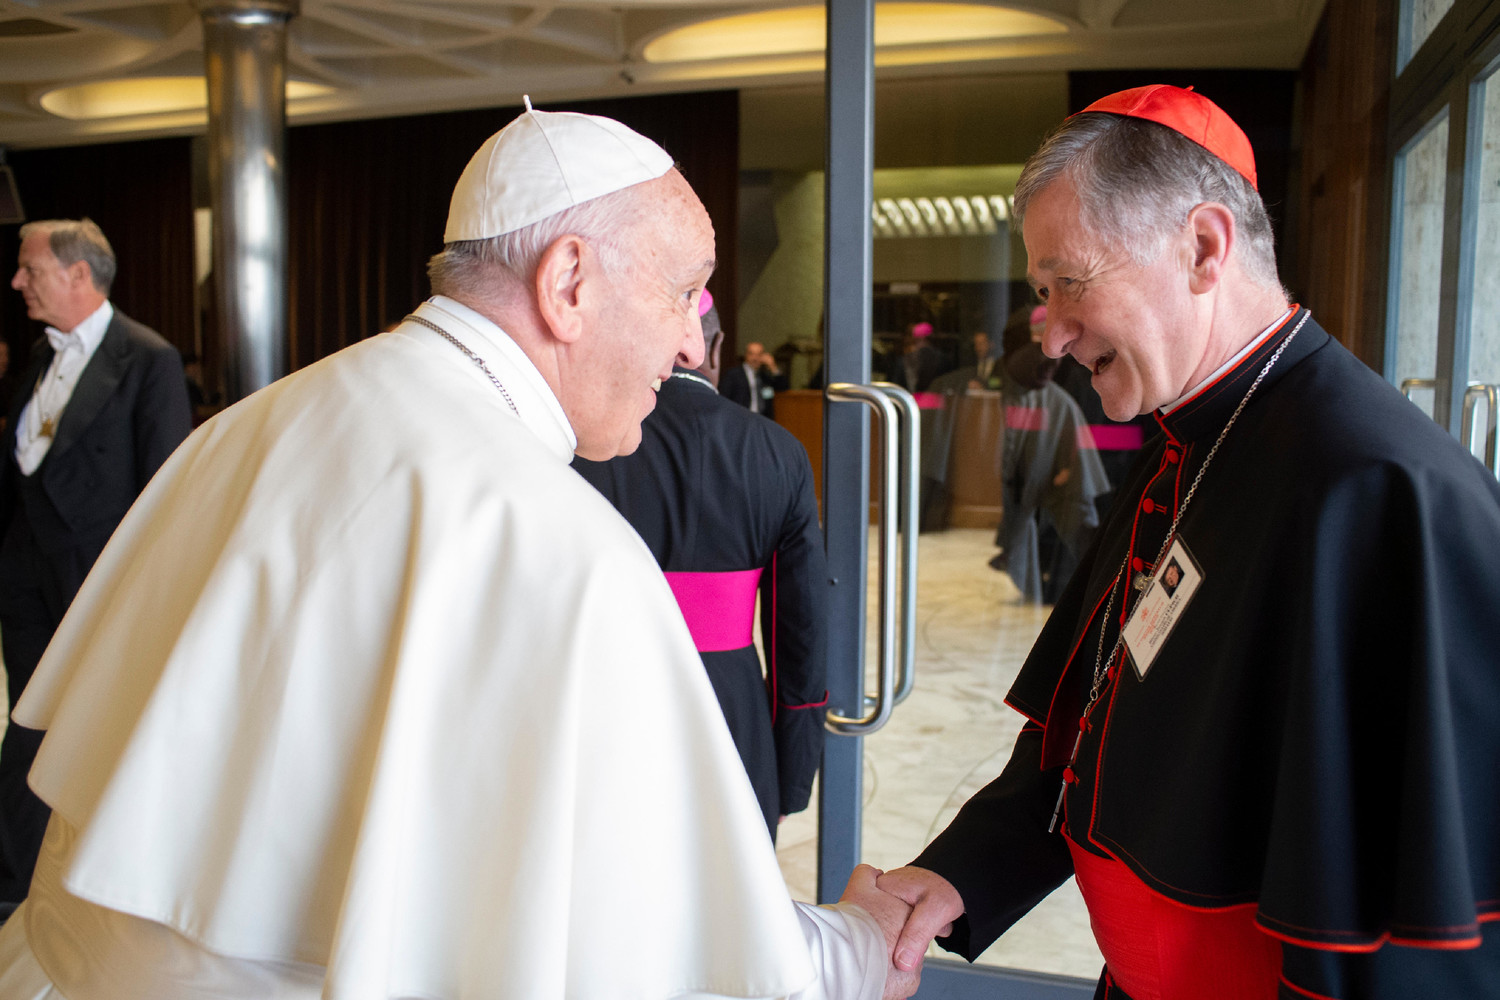 Pope Francis greets Cardinal Blase J. Cupich of Chicago before a session of the Synod of Bishops on young people, the faith and vocational discernment at the Vatican Oct. 16.